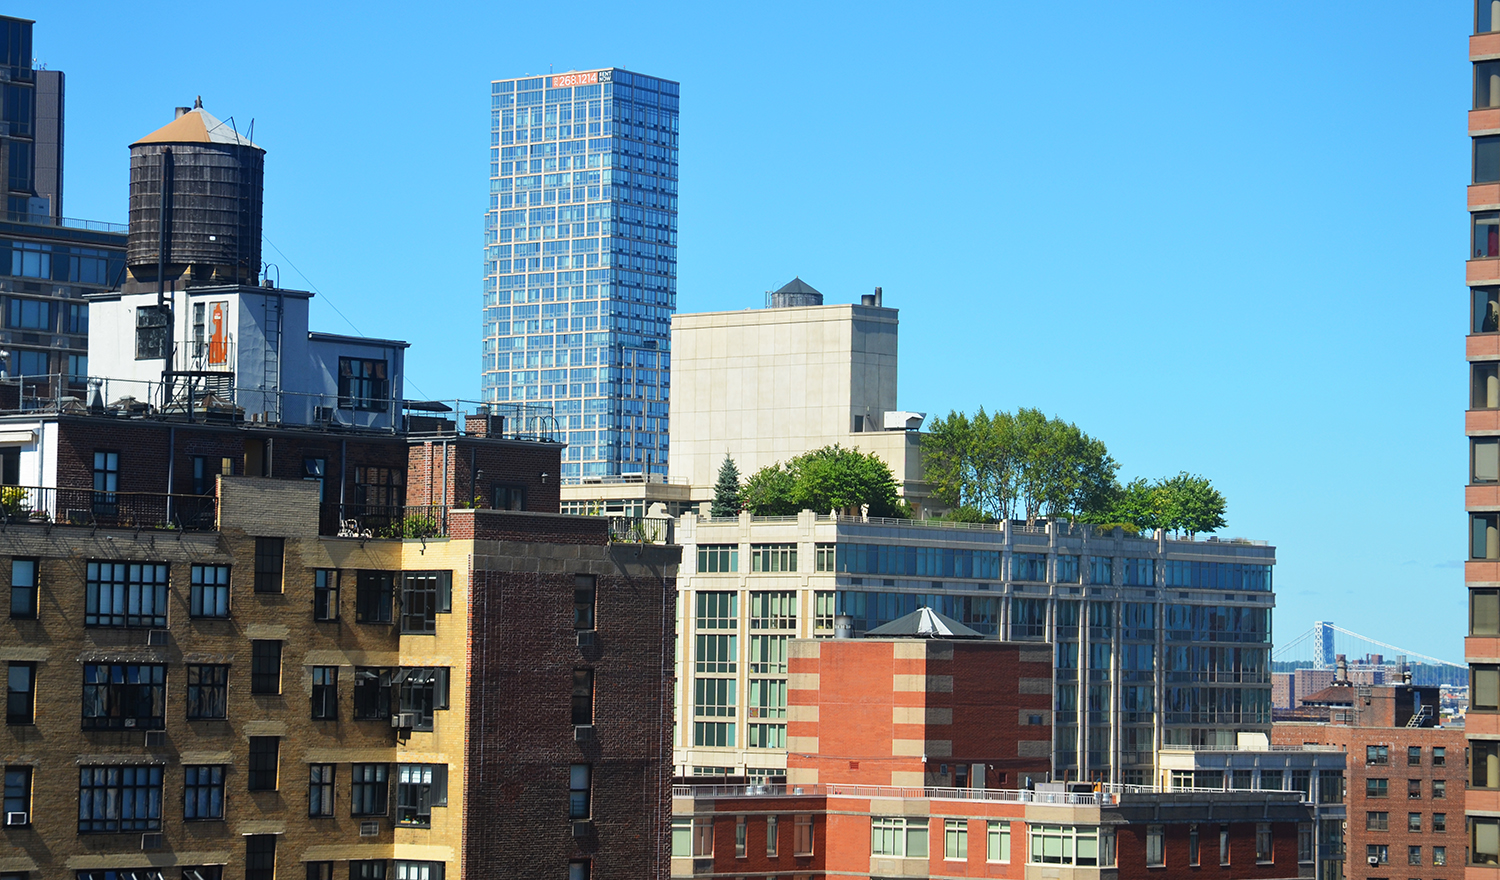 Northwest view from The Kent, 200 East 95th Street